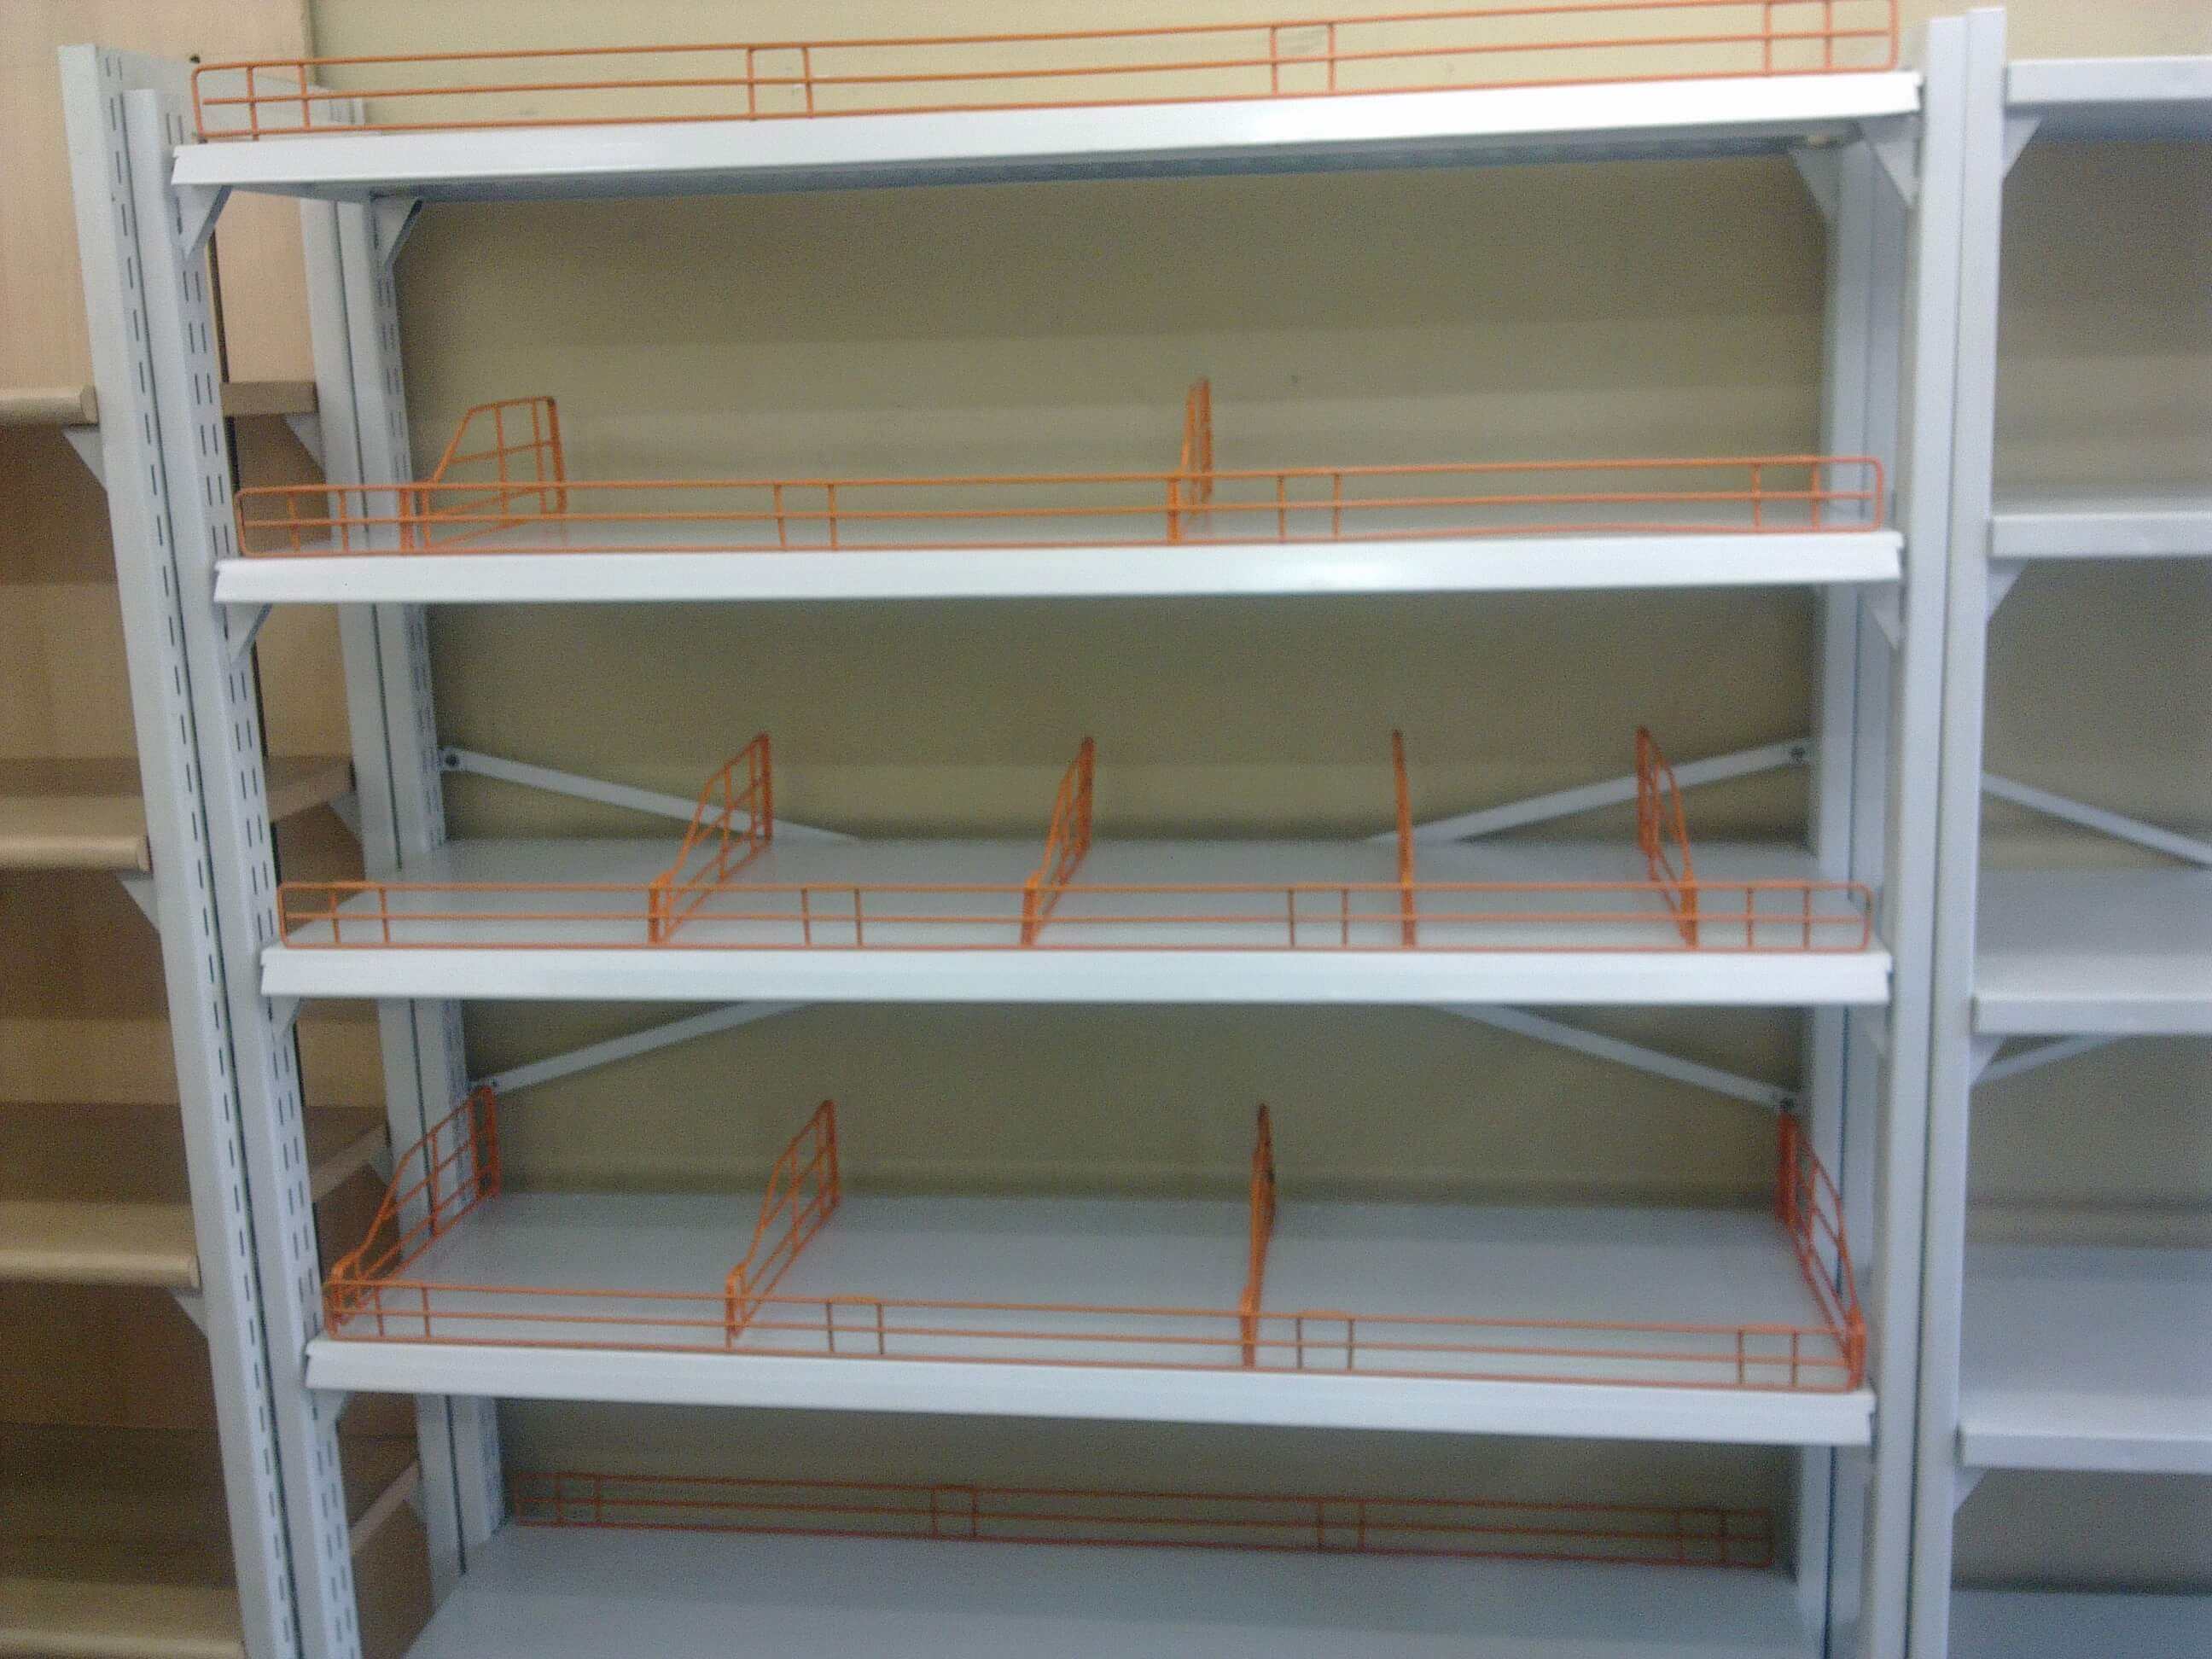 four pole rack / super market / self standing racks /center cantilever rack / back to back  cantilever rack /perforated sheet racks / pharmacy racks / medicine racks / four pole flexible rack